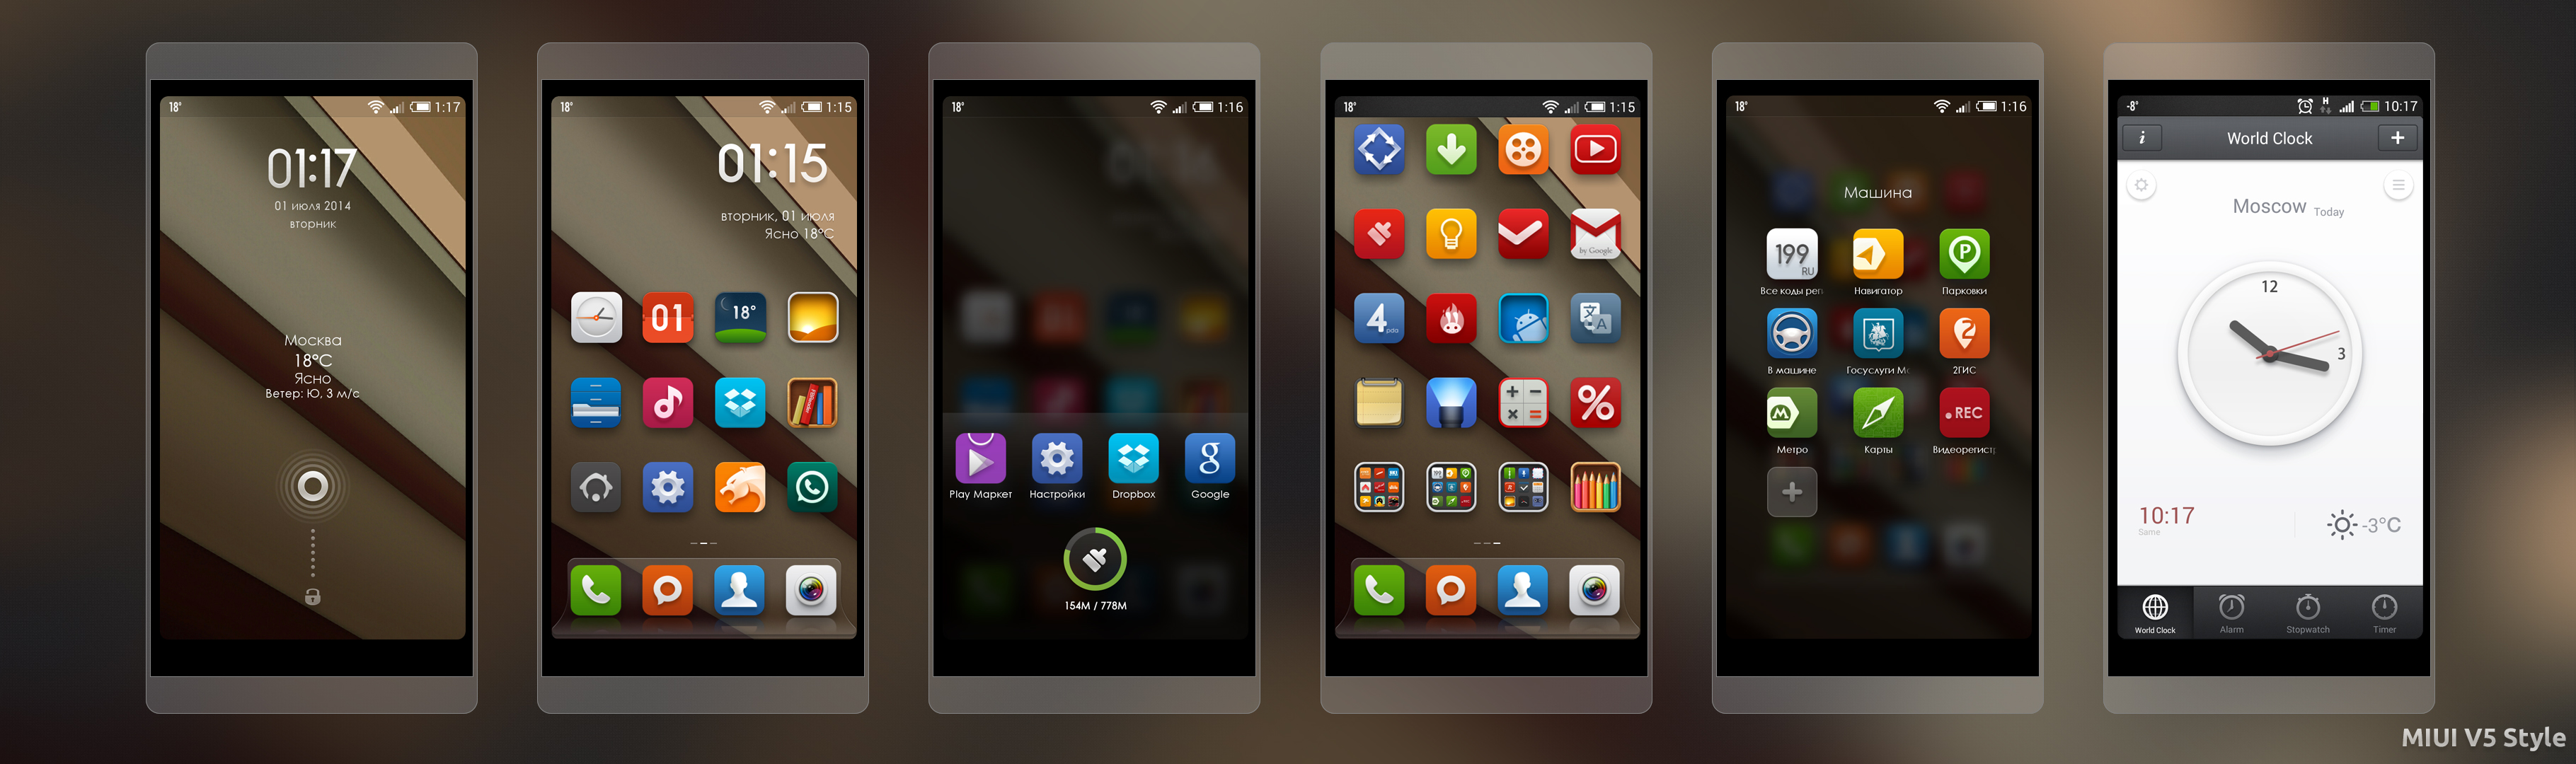 MIUI V5 Style by vicing